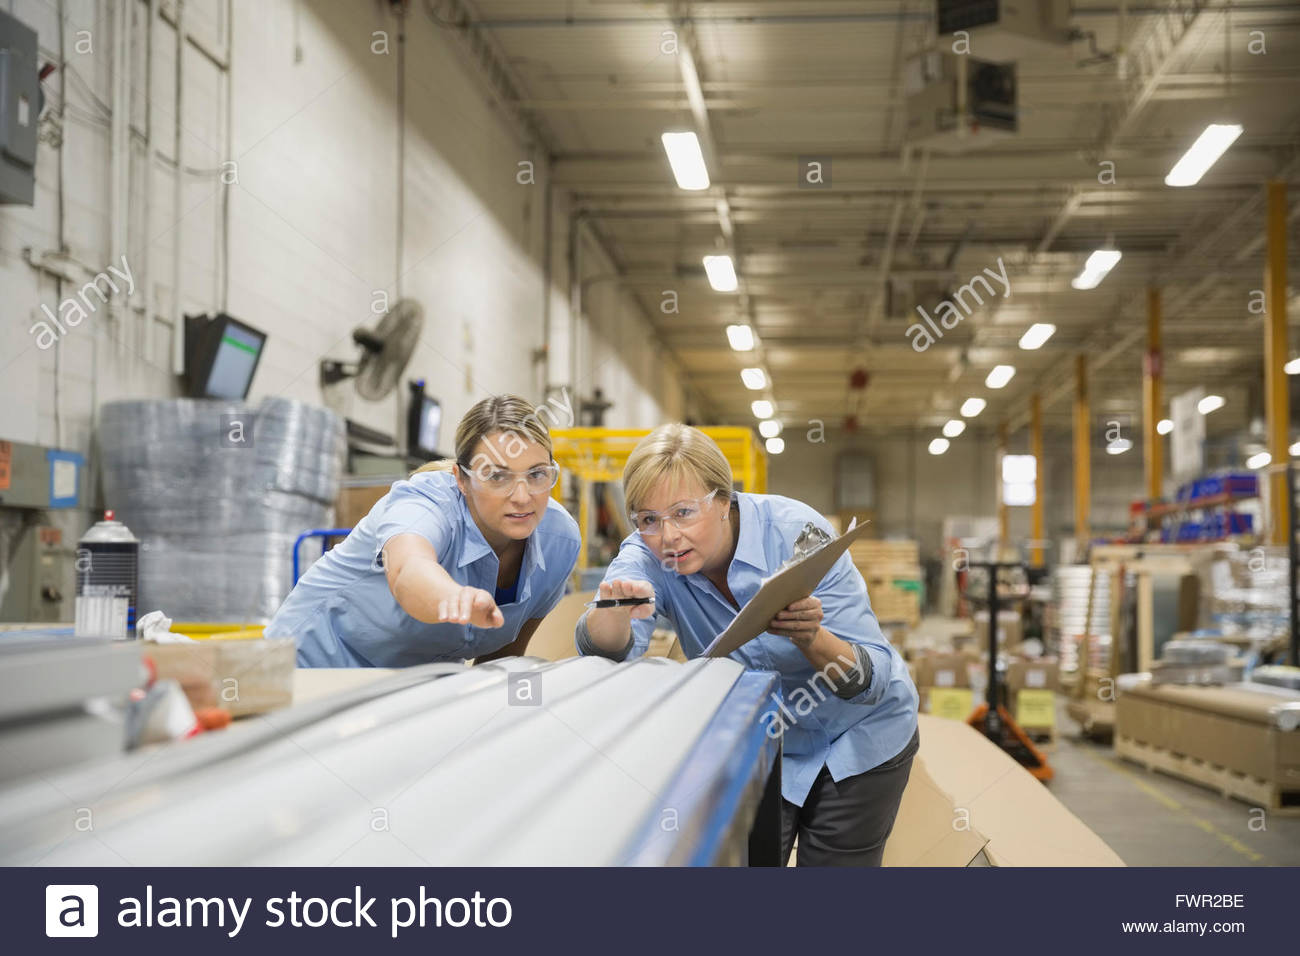 Female workers analyzing metal products in warehouse - Stock Image